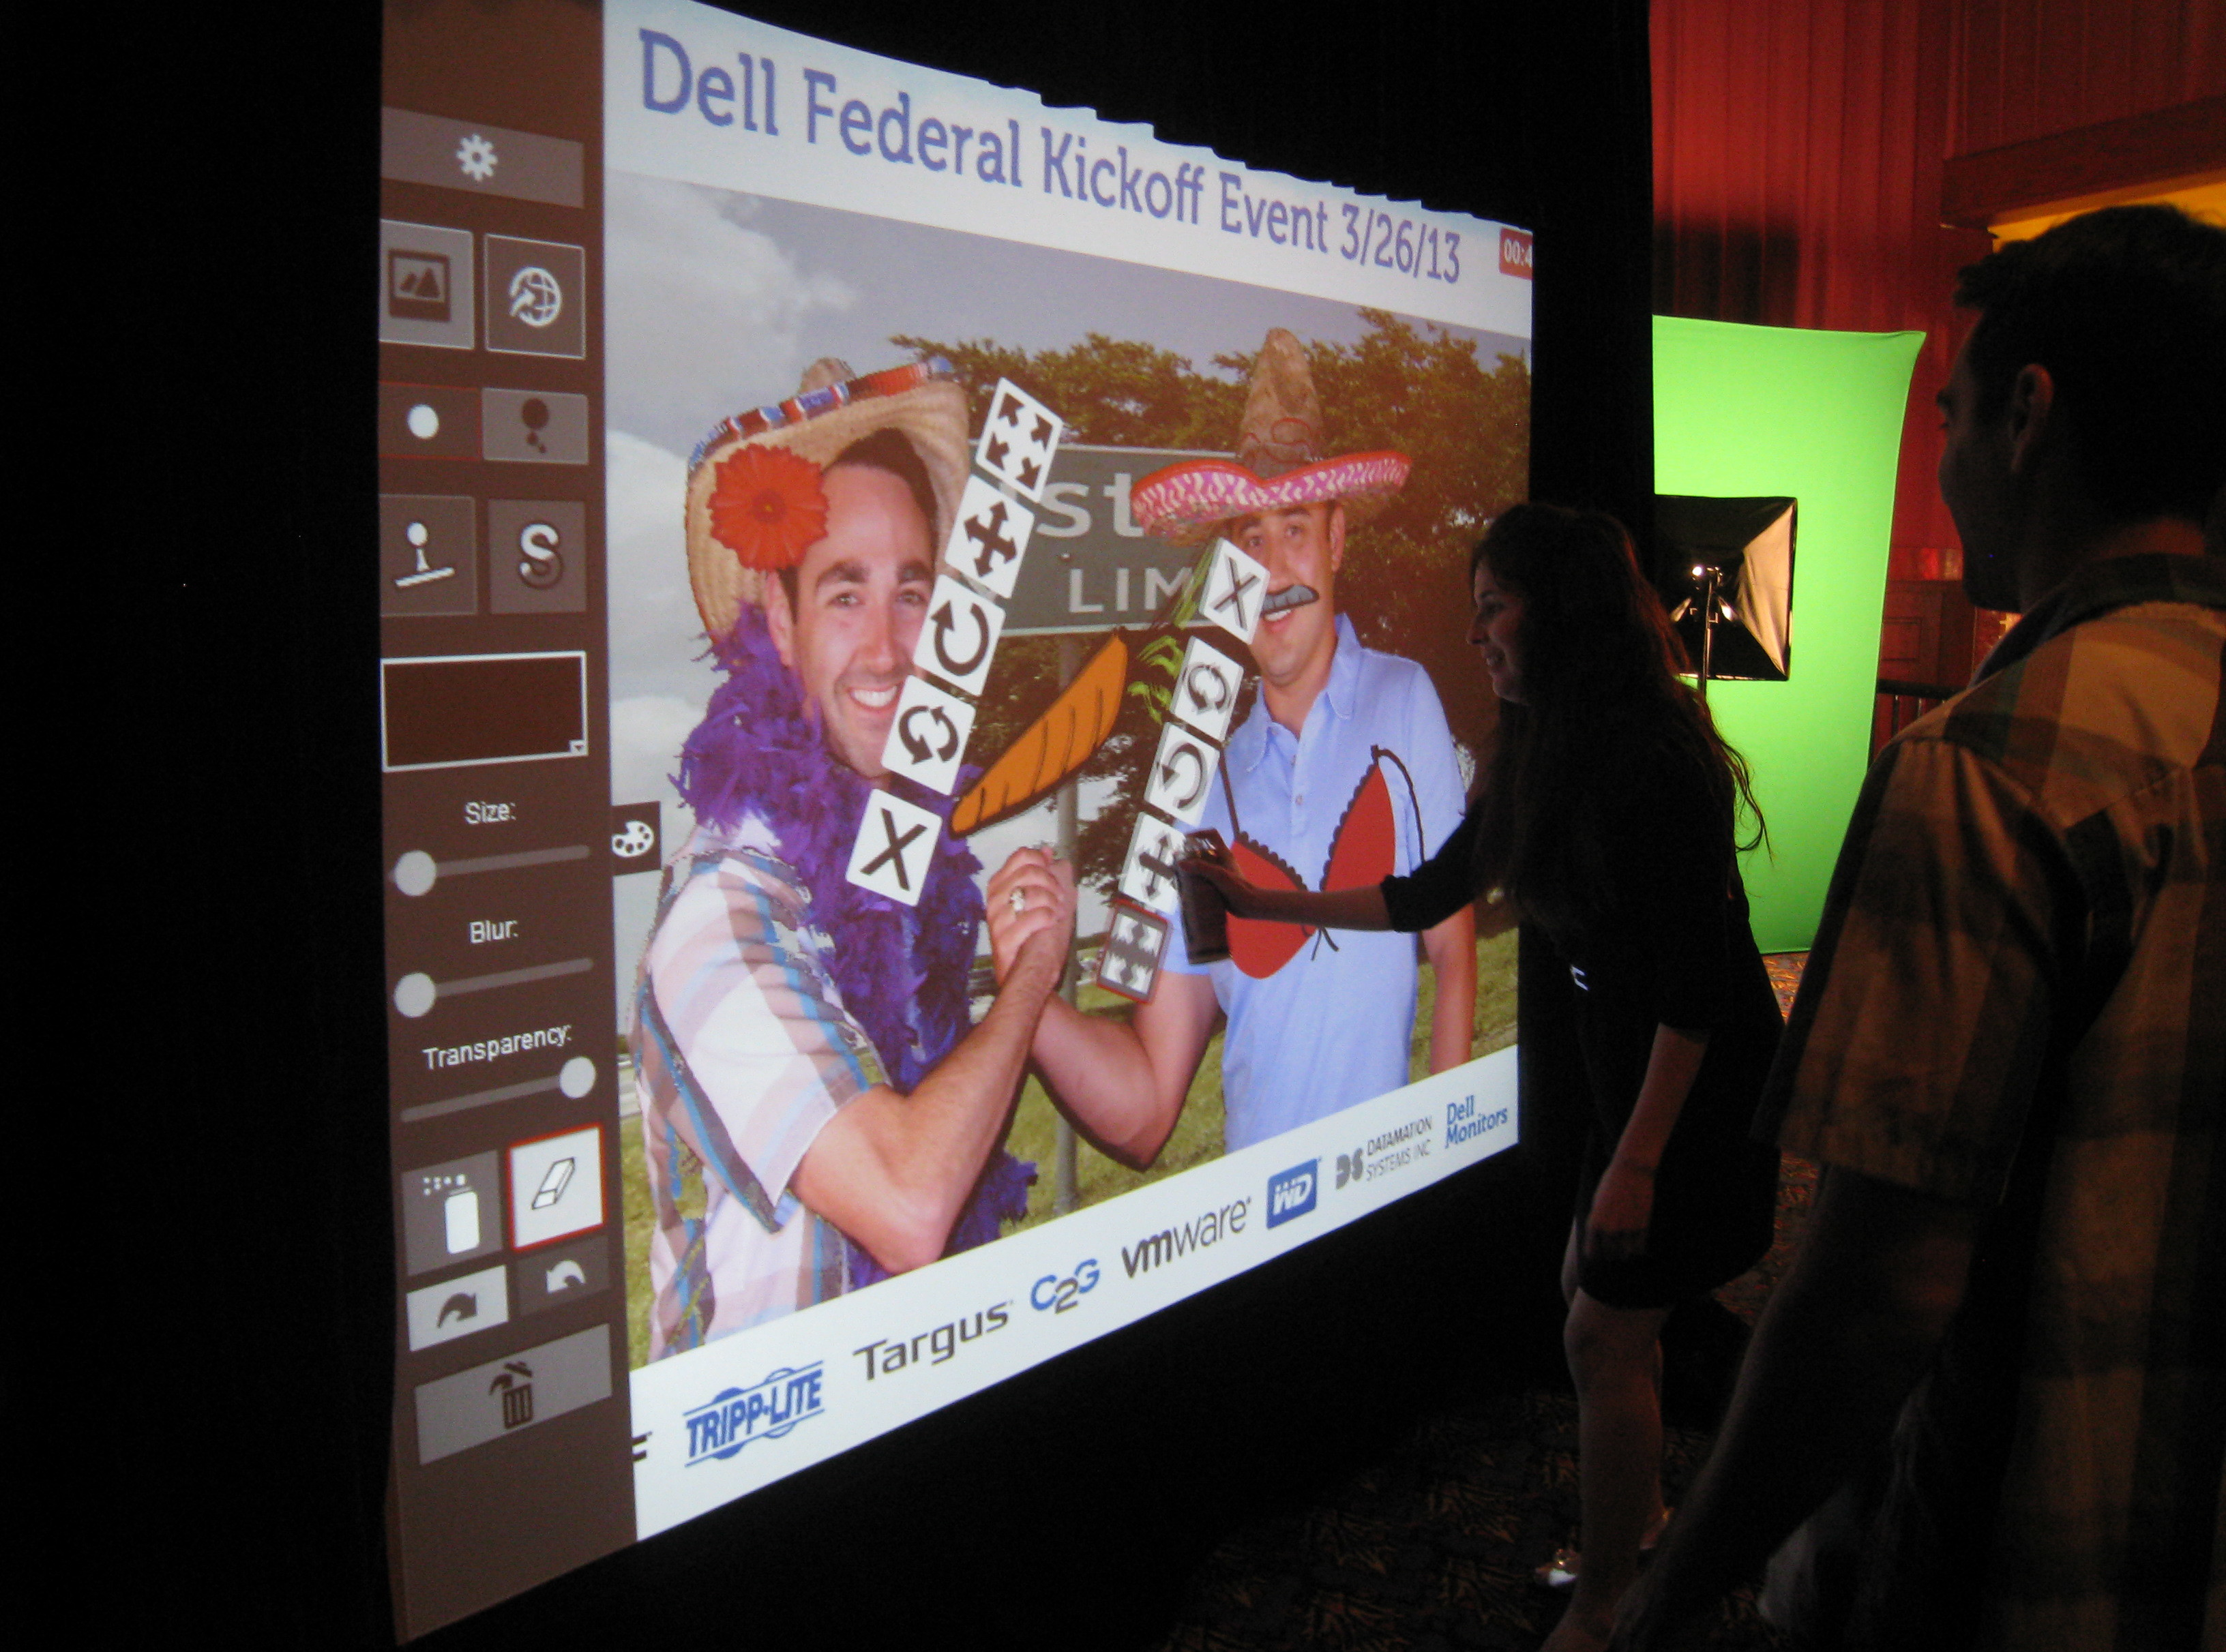 Digital-Grafitti-Wall-Photo-Booth-For-Rent-5